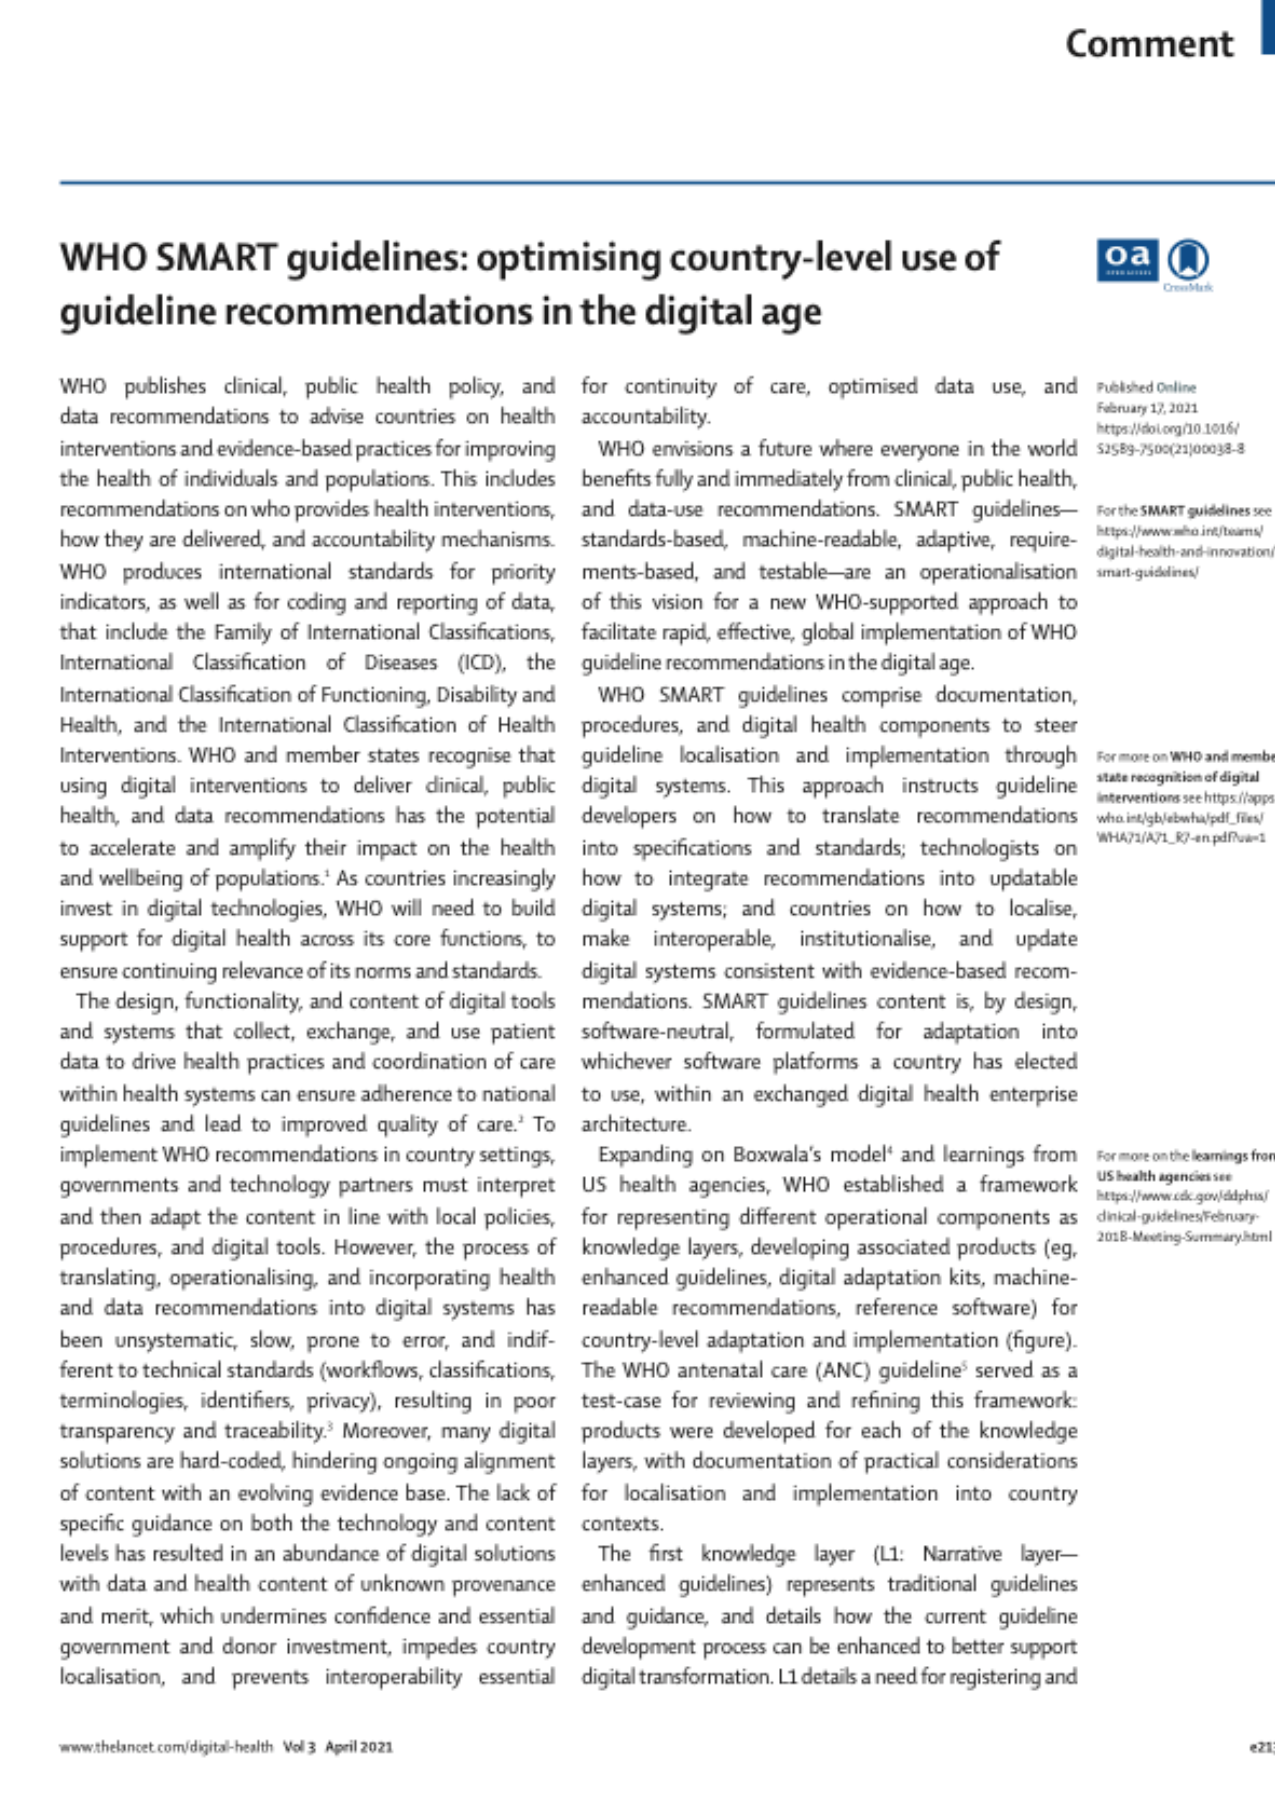 WHO SMART guidelines: optimising country-level use of guideline recommendations in the digital age